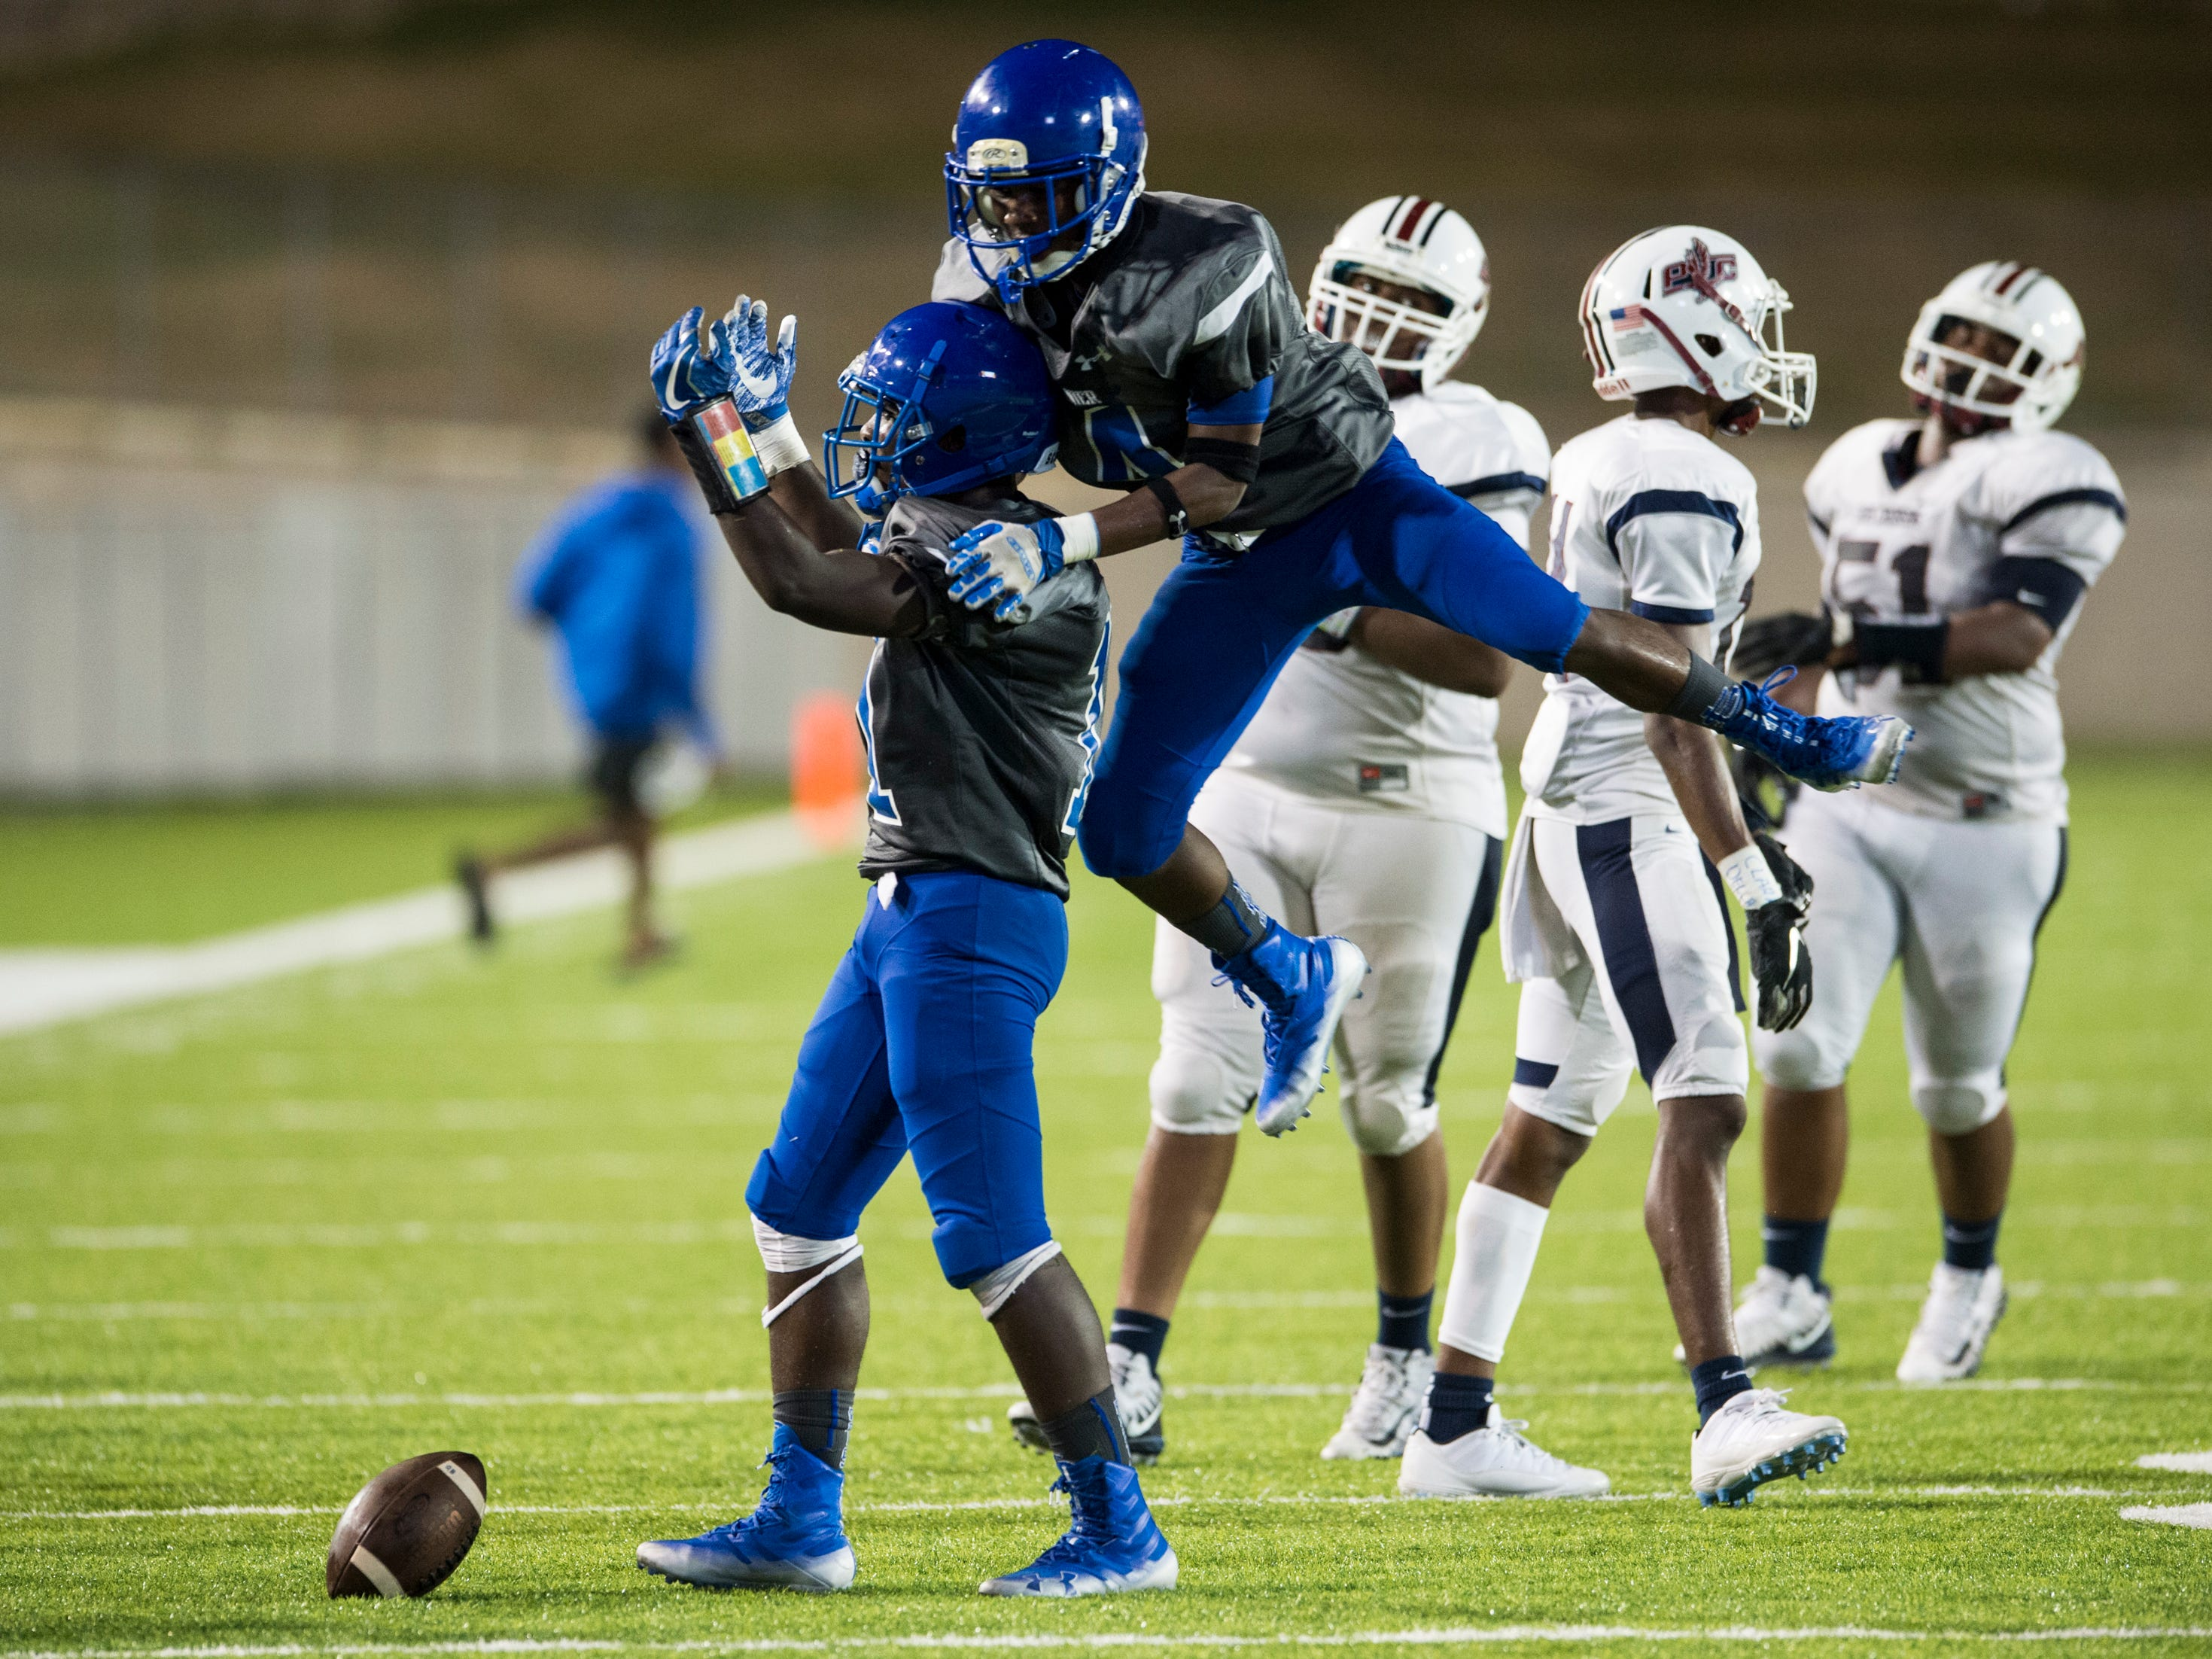 Lanier's Charles Armstrong (11) and Lanier's Jecorious Smith (4) celebrate after Armstorng's game ending interception at Cramton Bowl in Montgomery, Ala., on Friday, Sept. 21, 2018. Lanier defeated Park Crossing 35-28.